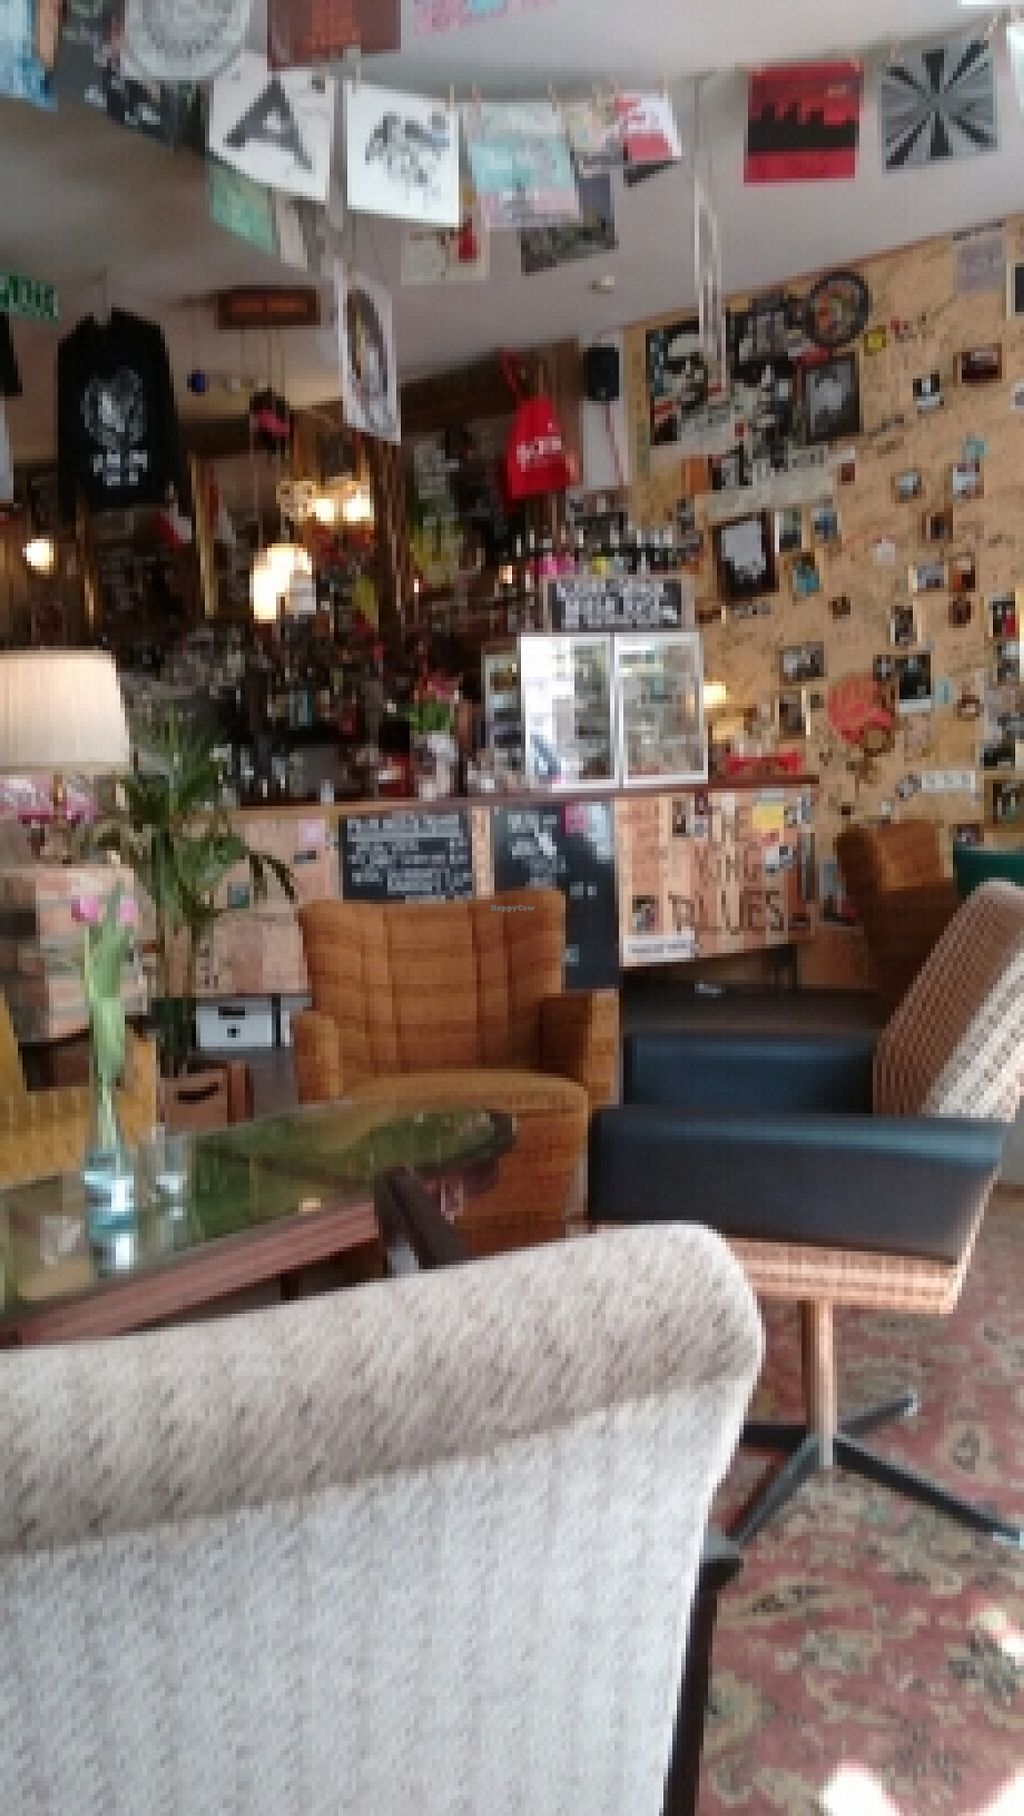 """Photo of Ramones Museum Berlin  by <a href=""""/members/profile/craigmc"""">craigmc</a> <br/>nice and comfy <br/> April 3, 2016  - <a href='/contact/abuse/image/56423/142503'>Report</a>"""